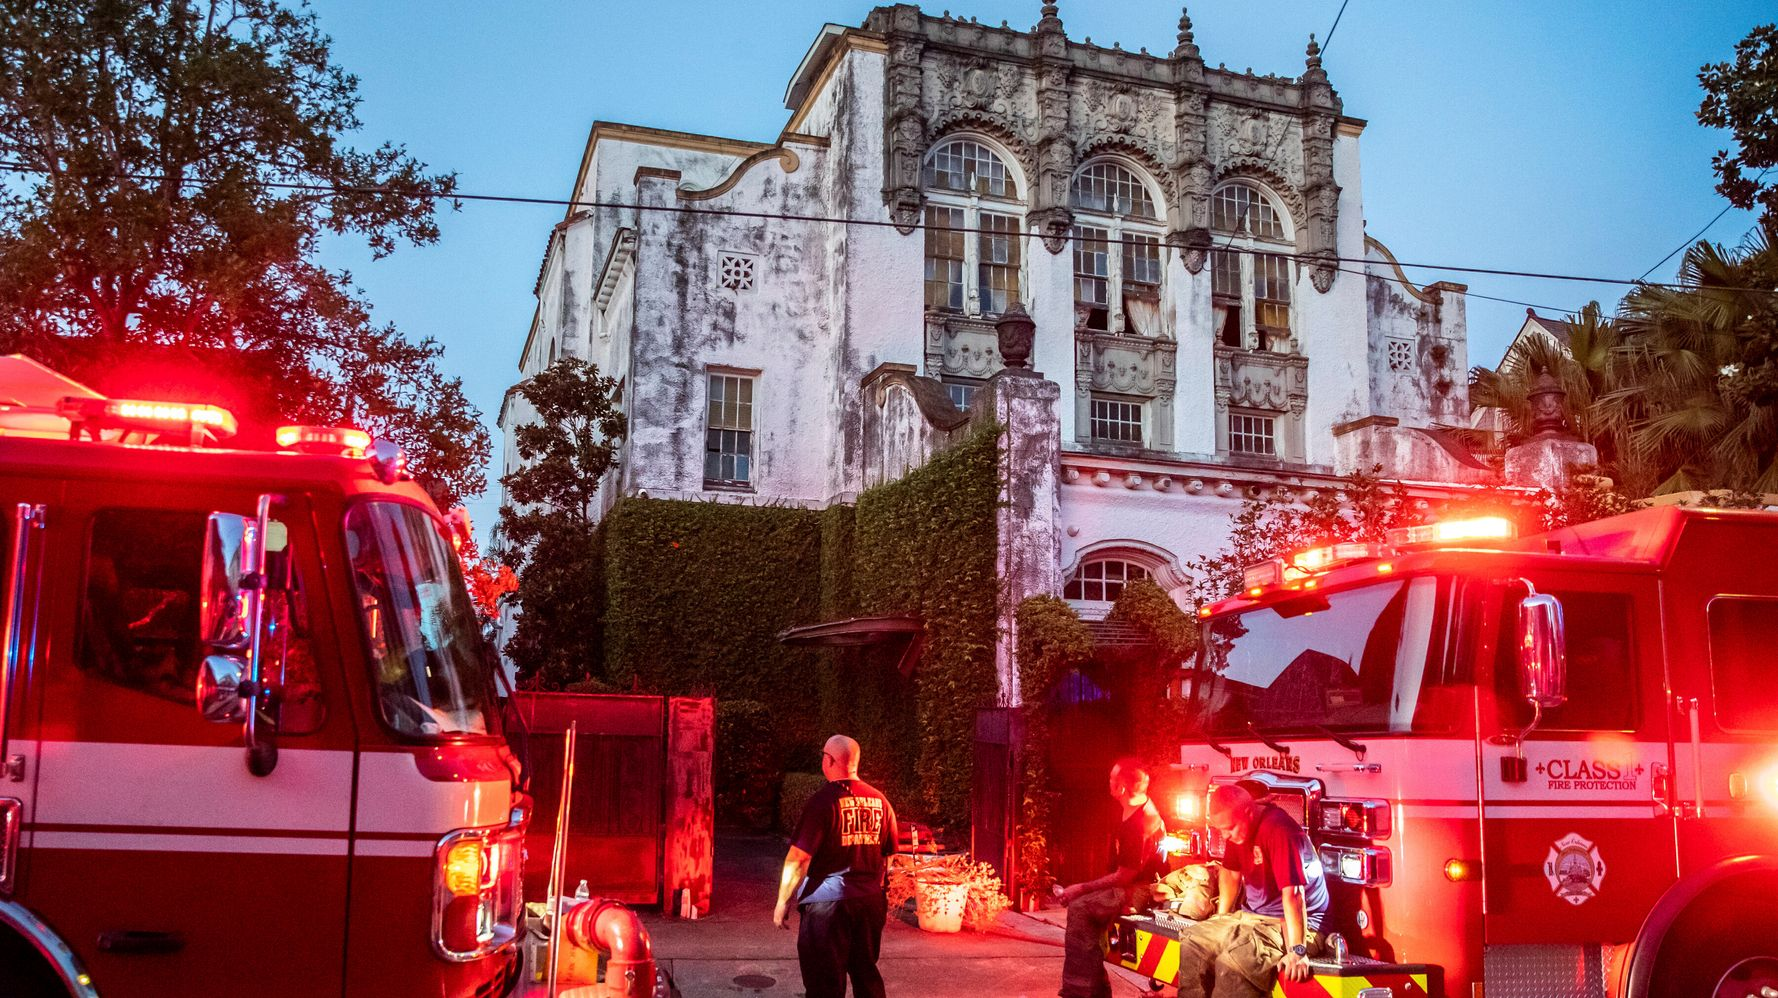 Police Launch Arson Probe Into Fire At Beyonce's New Orleans Mansion